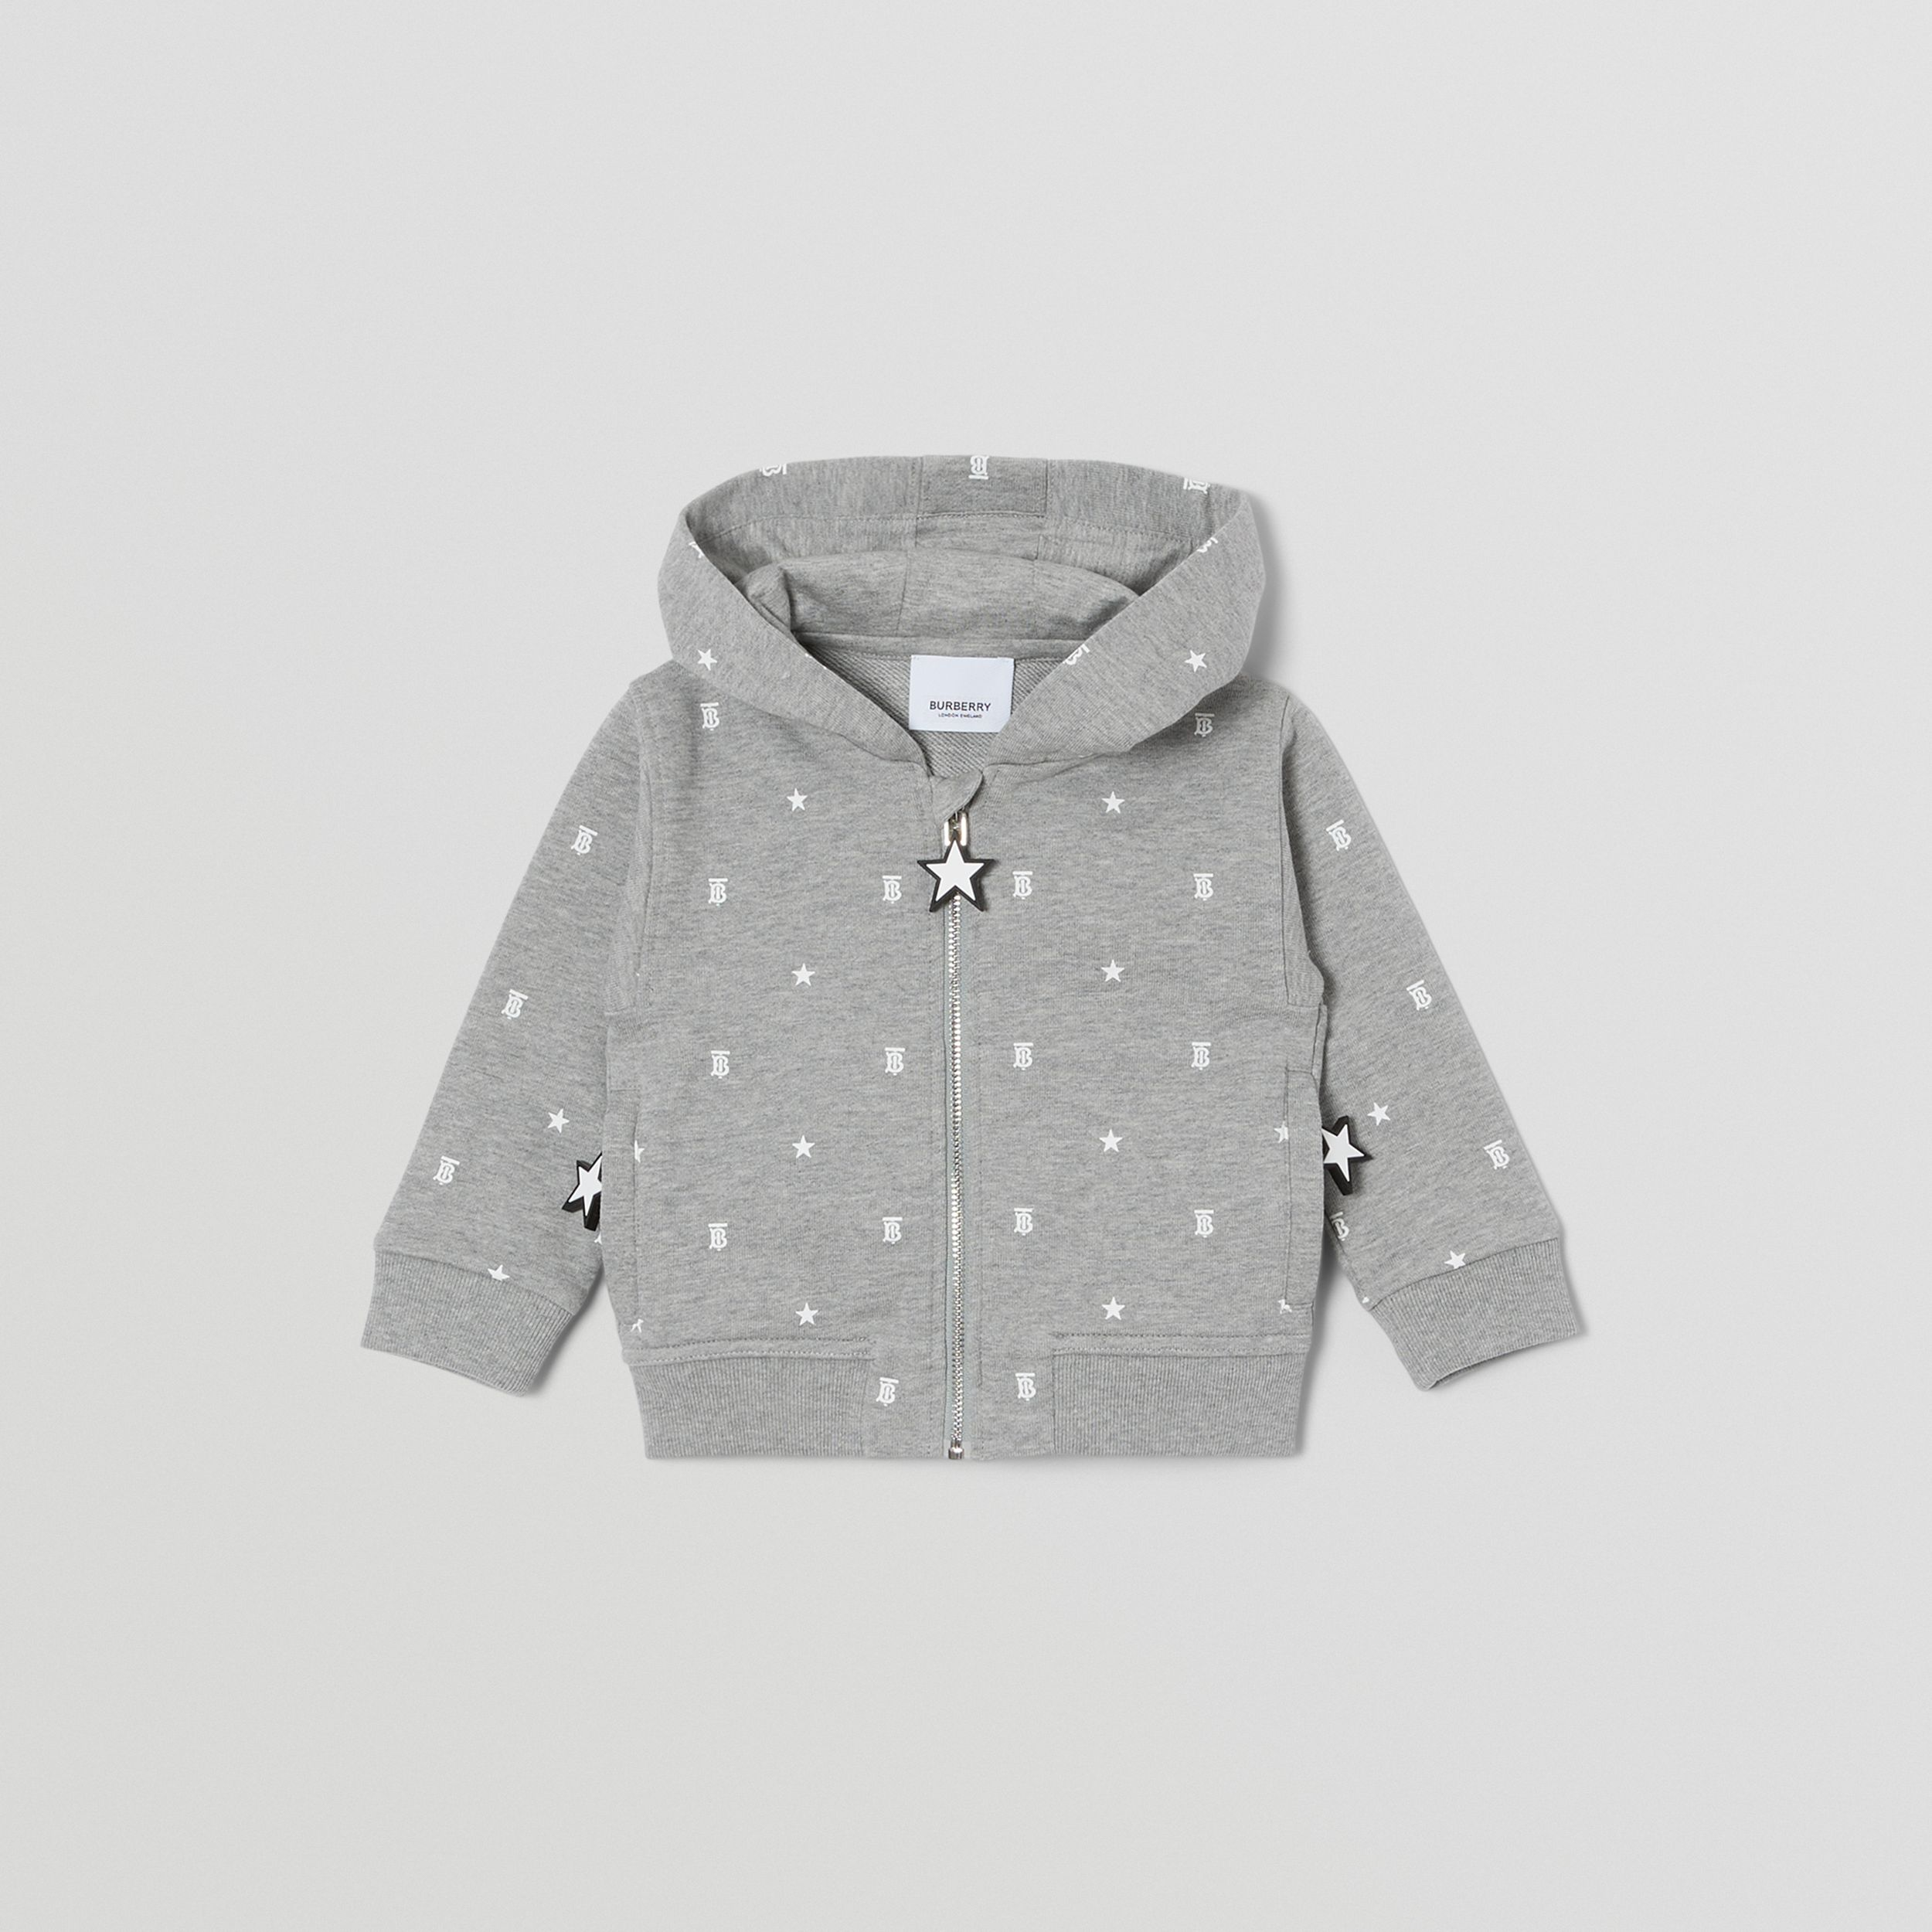 Star and Monogram Print Cotton Hooded Top in Grey - Children | Burberry - 1